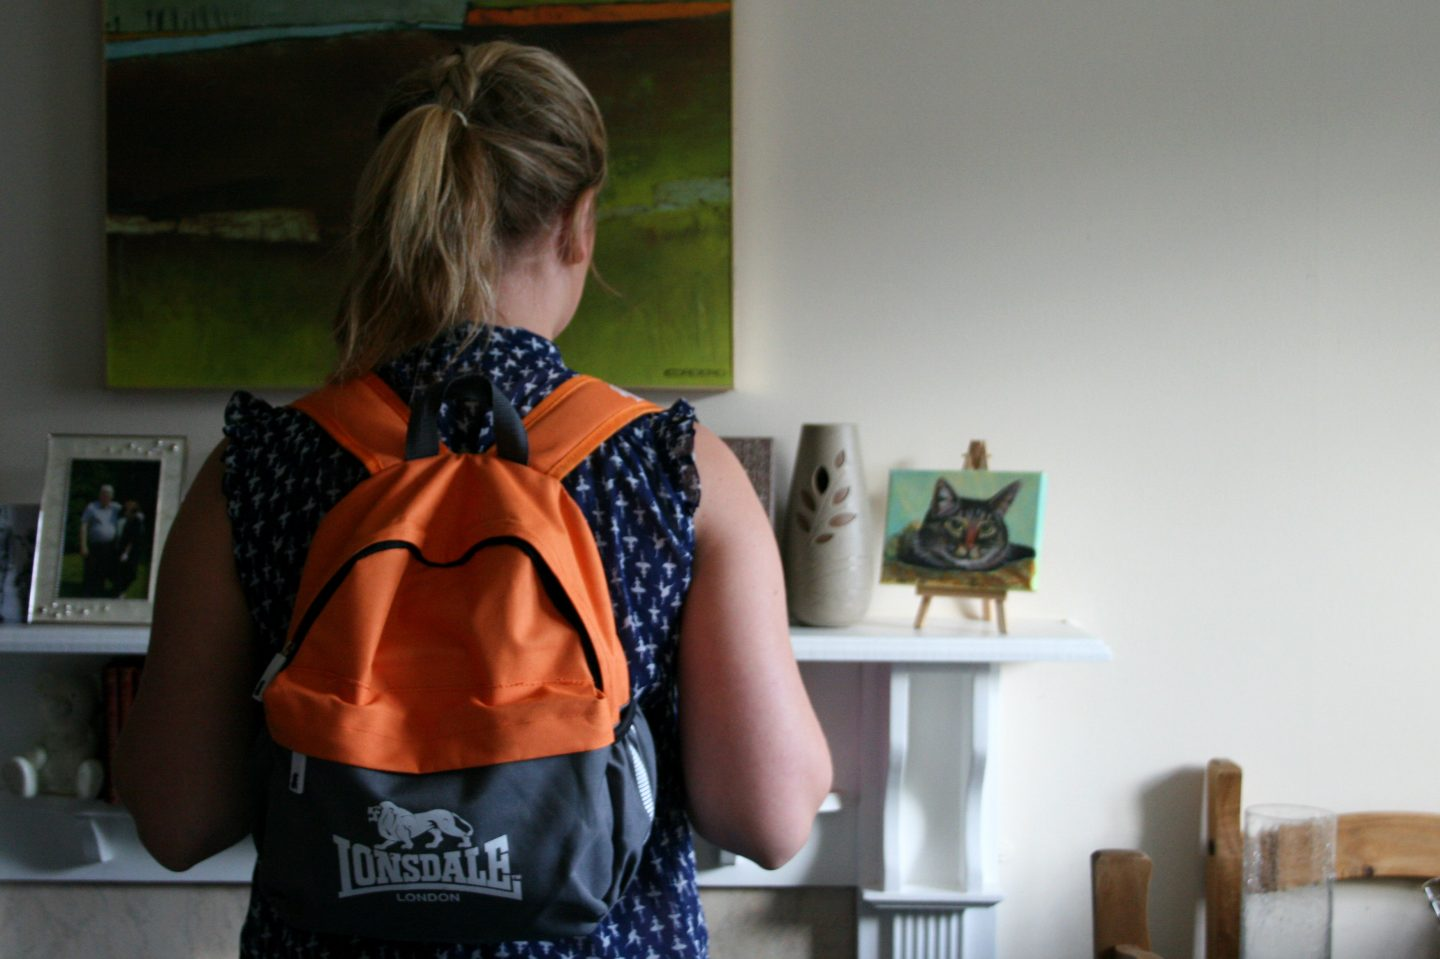 Photo of LPM wearing mini rucksack from behind